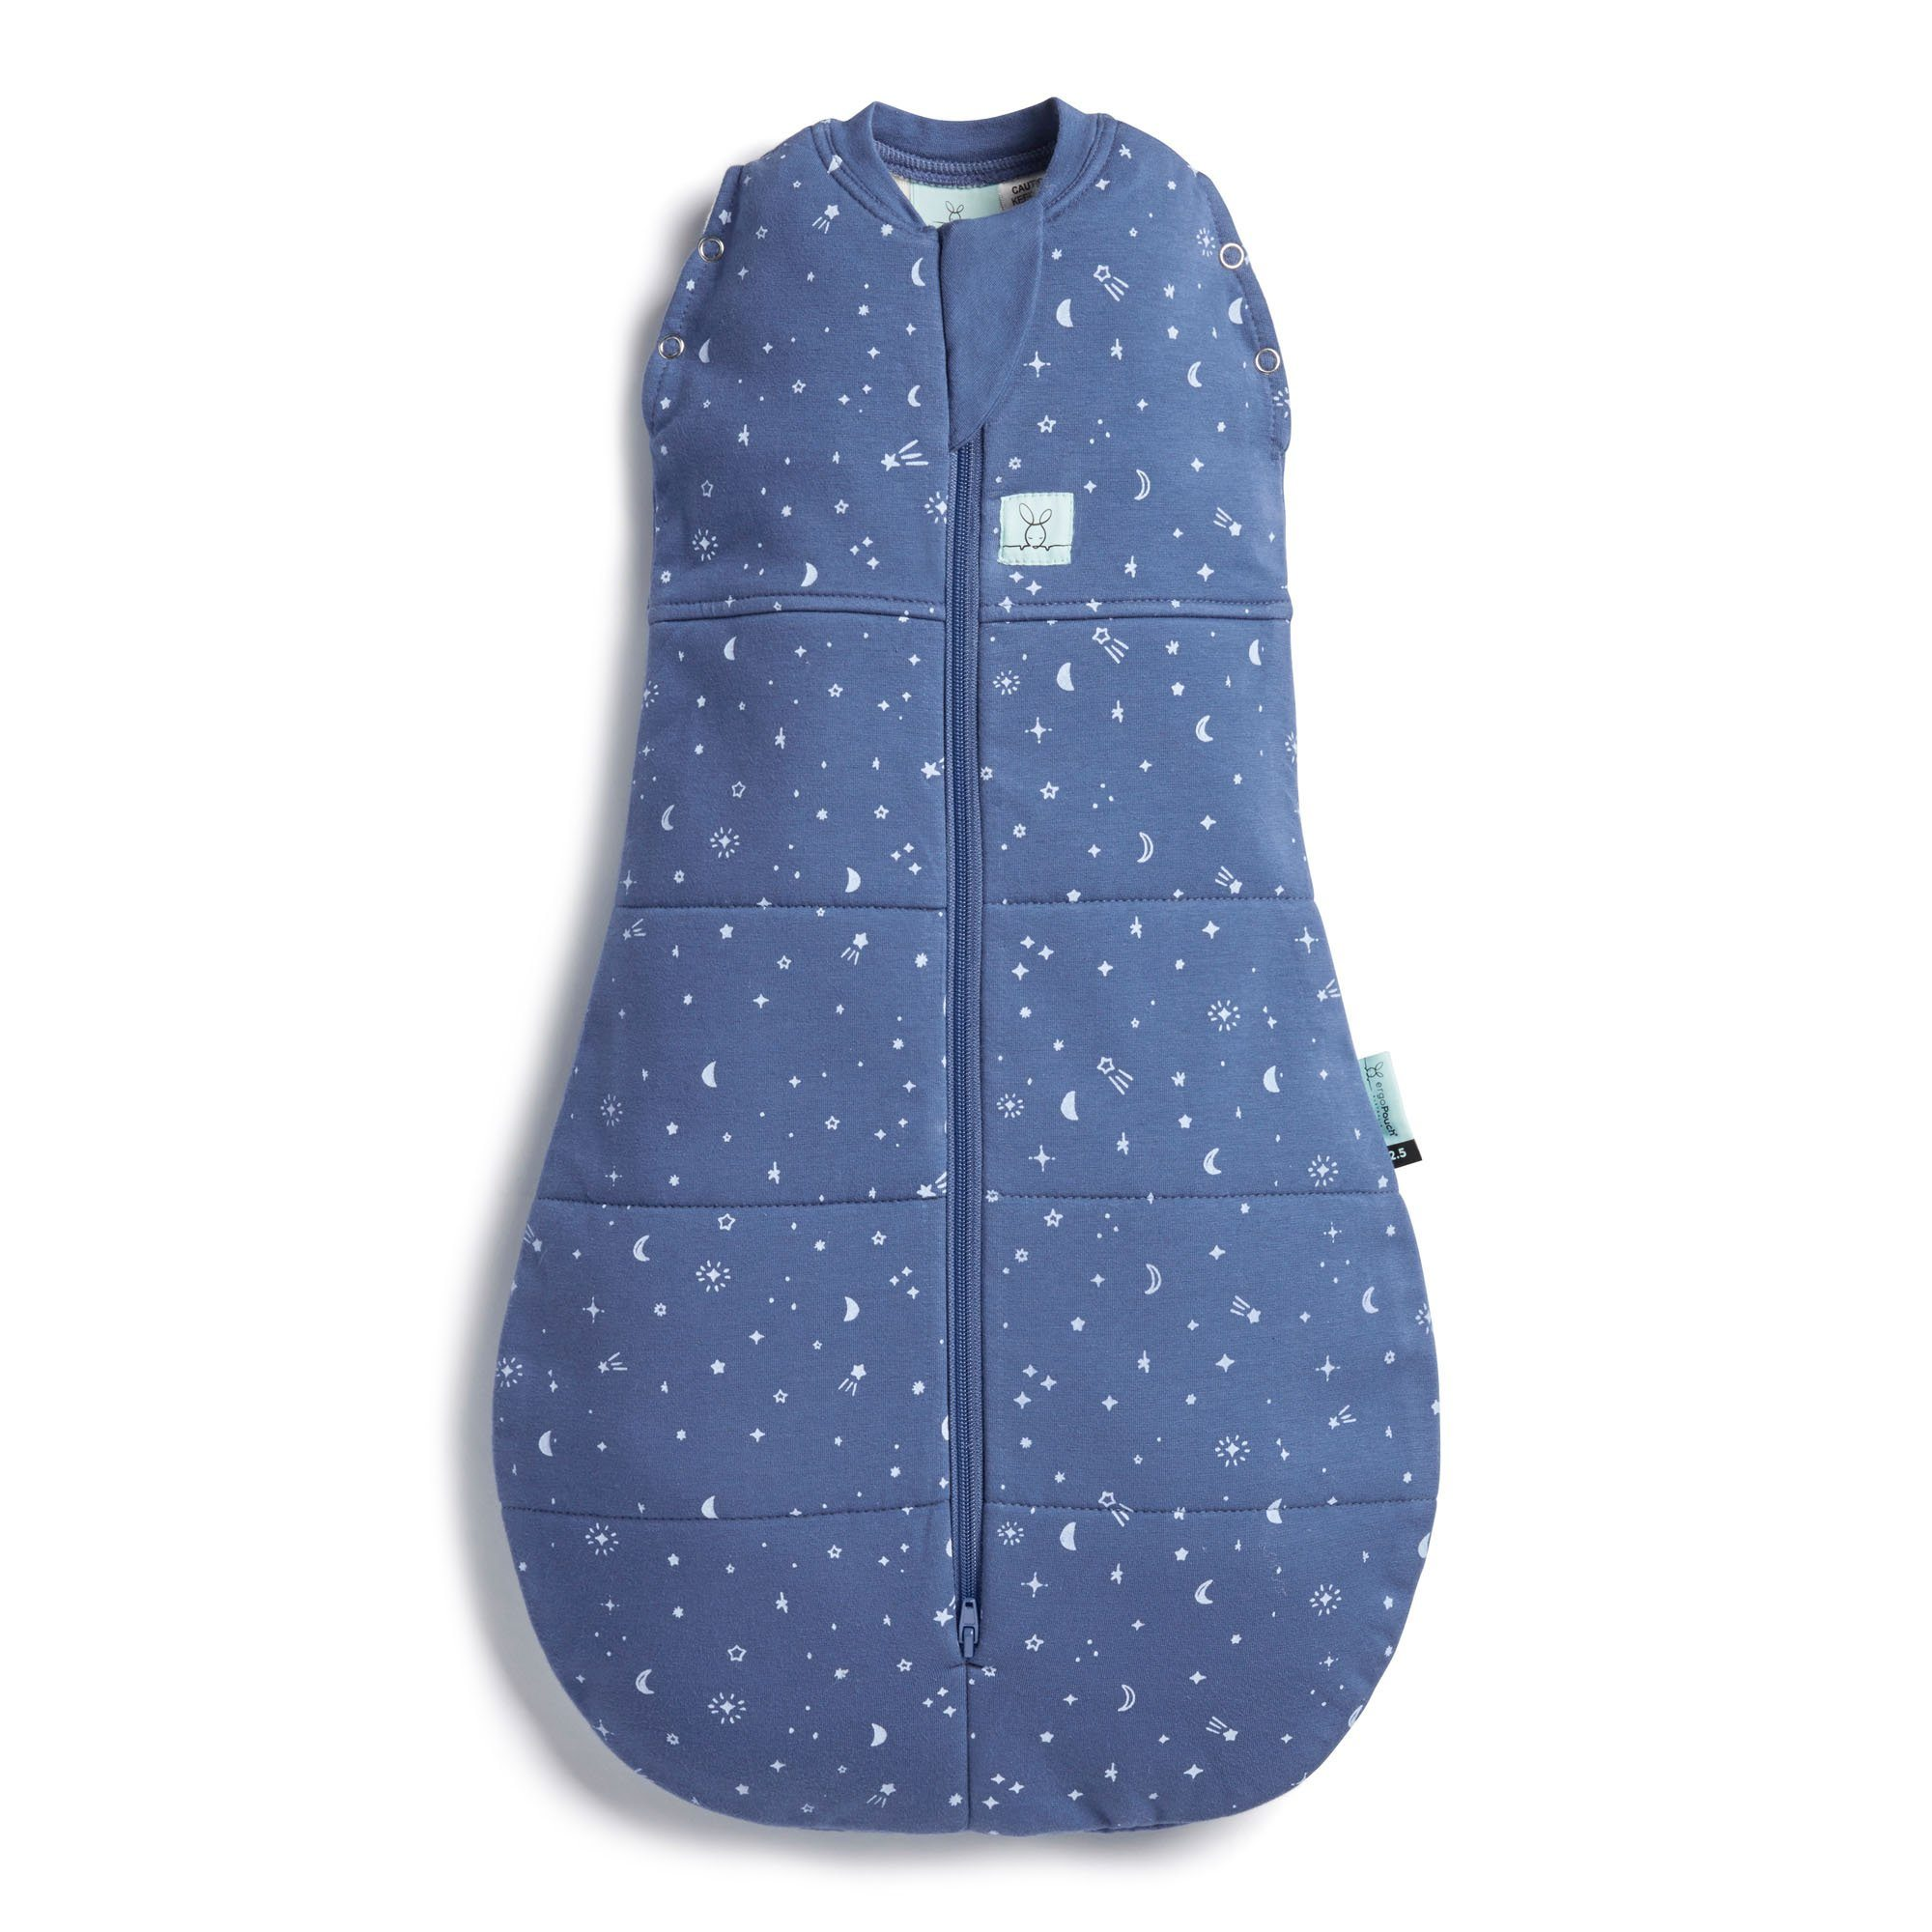 Cocoon Swaddle Bag 2.5 tog (Night Sky)